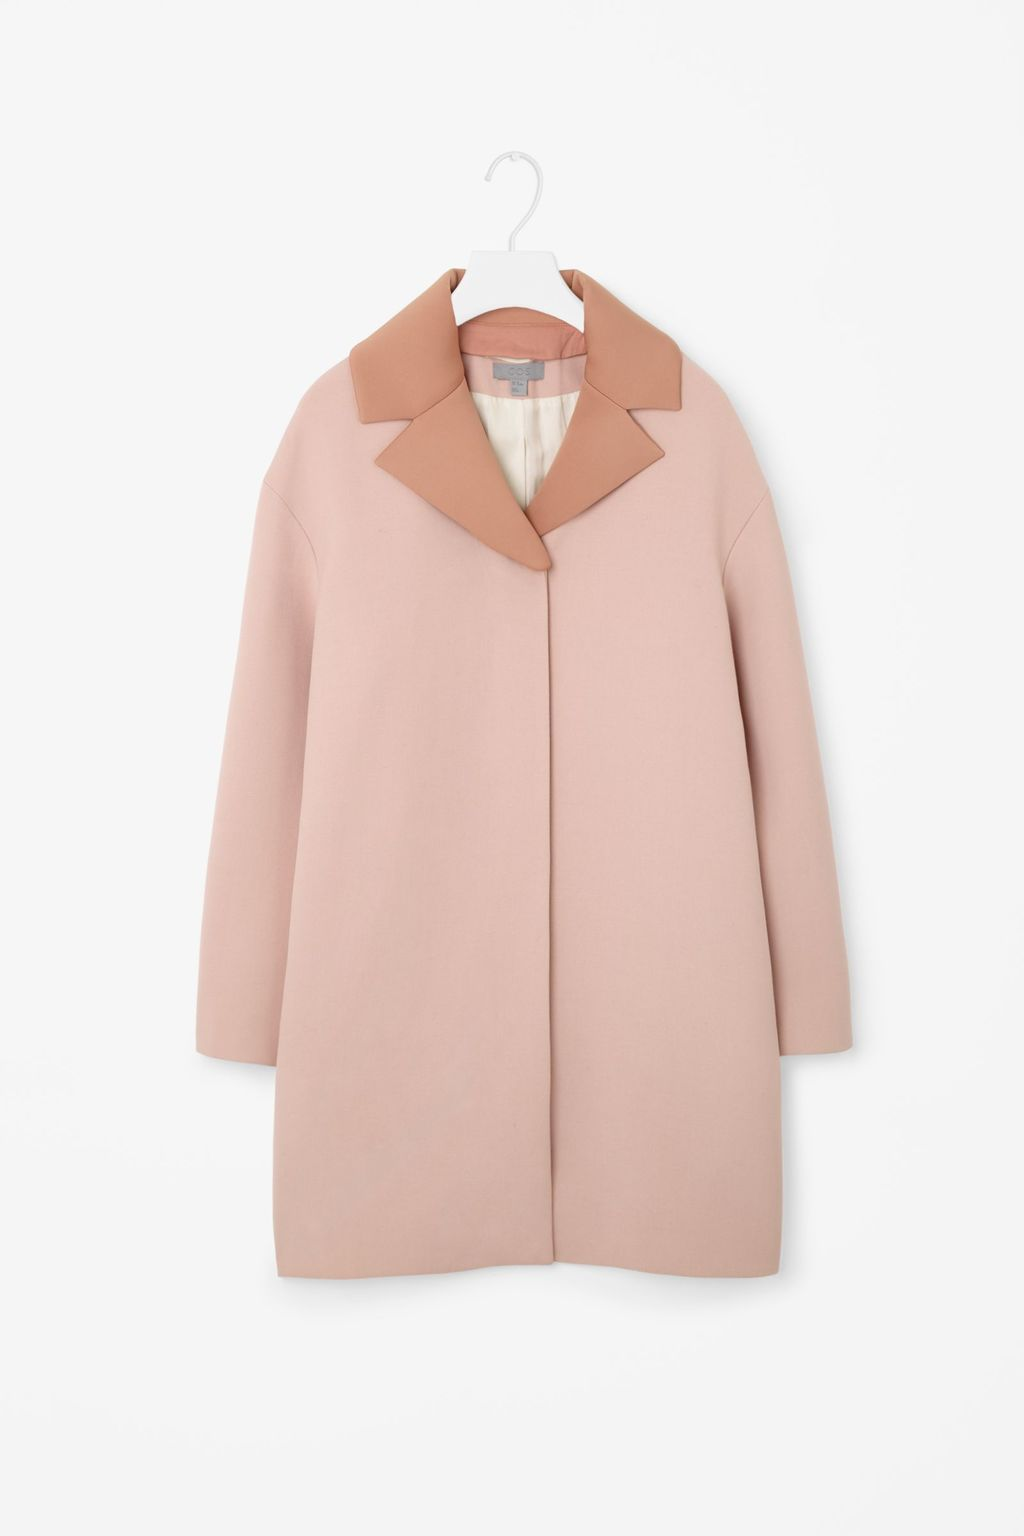 Coat With Detachable Lapel - style: single breasted; collar: standard lapel/rever collar; length: mid thigh; secondary colour: camel; predominant colour: nude; occasions: casual, creative work; fit: straight cut (boxy); fibres: polyester/polyamide - mix; sleeve length: long sleeve; sleeve style: standard; collar break: medium; pattern type: fabric; pattern size: standard; pattern: colourblock; texture group: woven bulky/heavy; season: s/s 2016; wardrobe: highlight